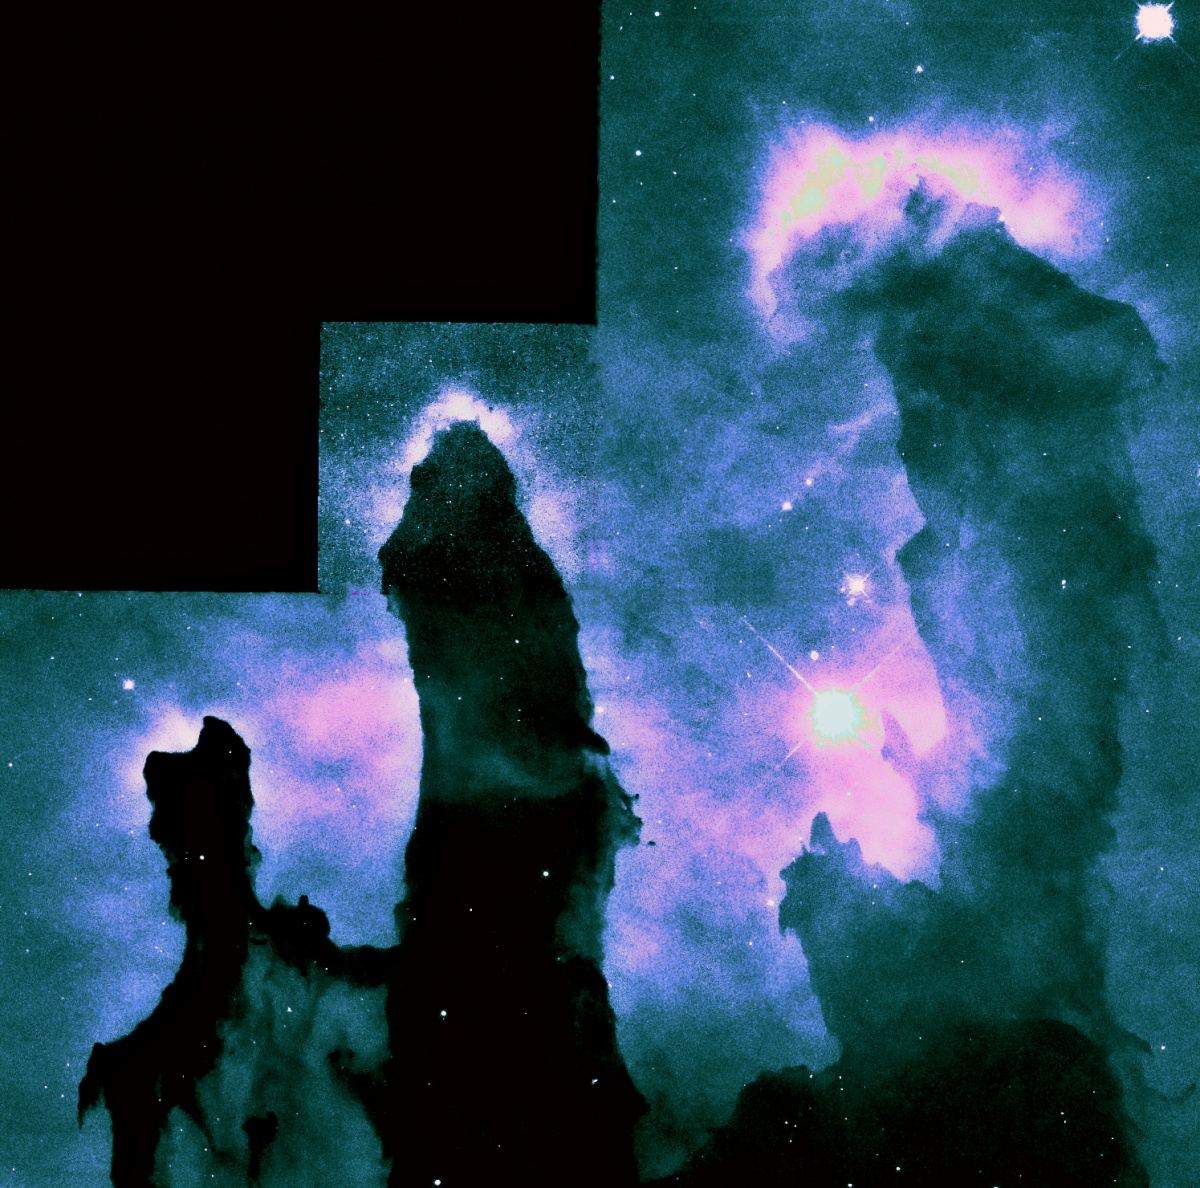 Pillars of Creation: Lots of fun had playing with the data from the HST. Have been going a bit stir crazy . My arthritis is playing up and preventing me lifting  my scope out onto its mount. Last night I would have liked to be out imaging Mars!